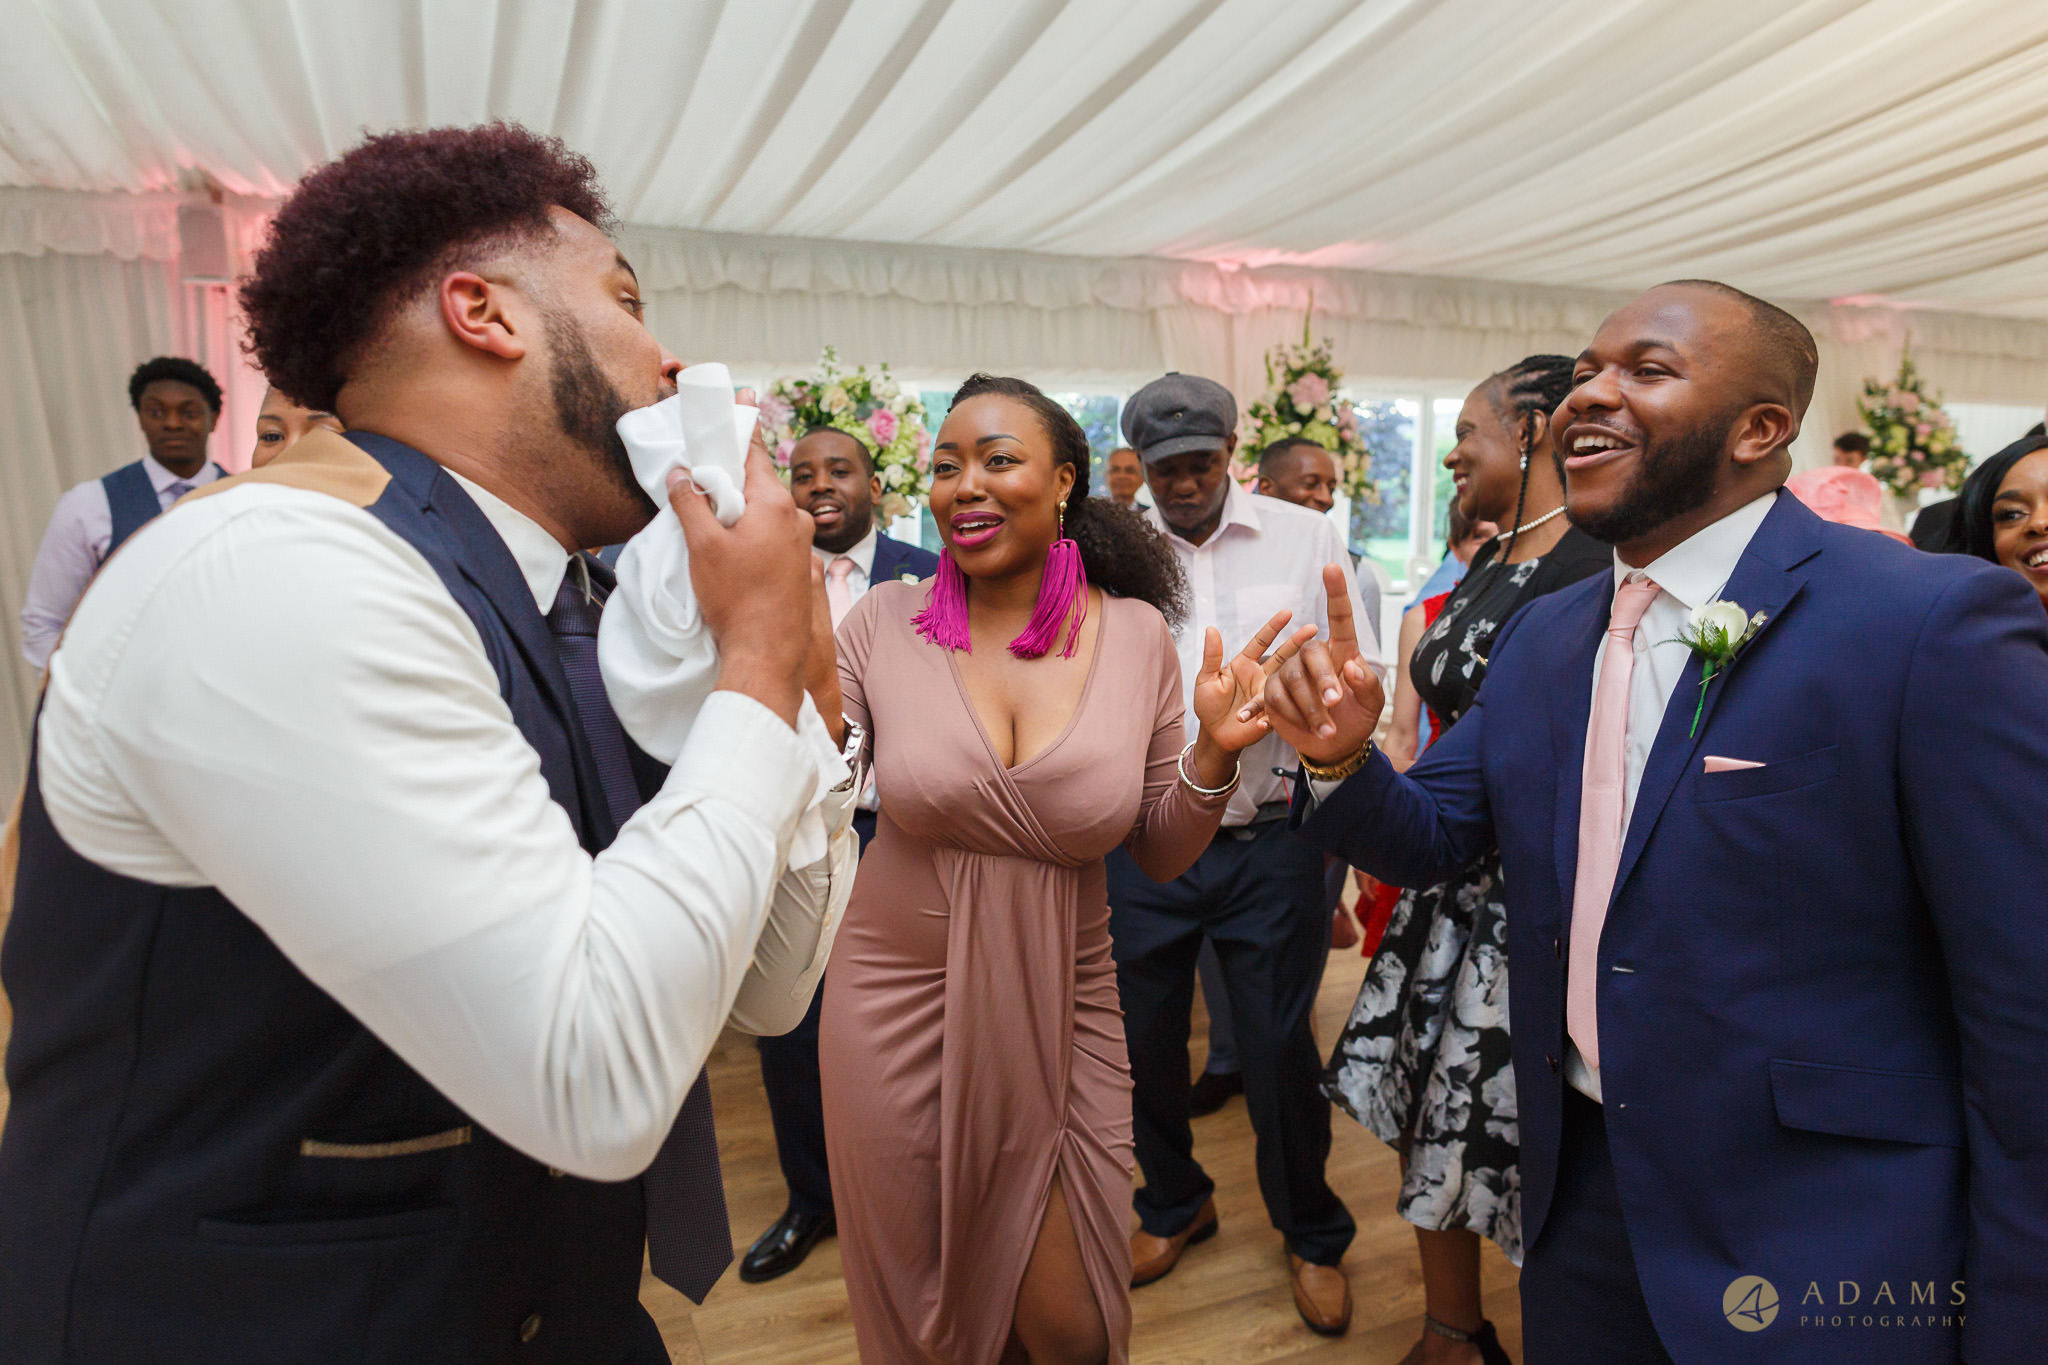 guests having a great fun during the dancing